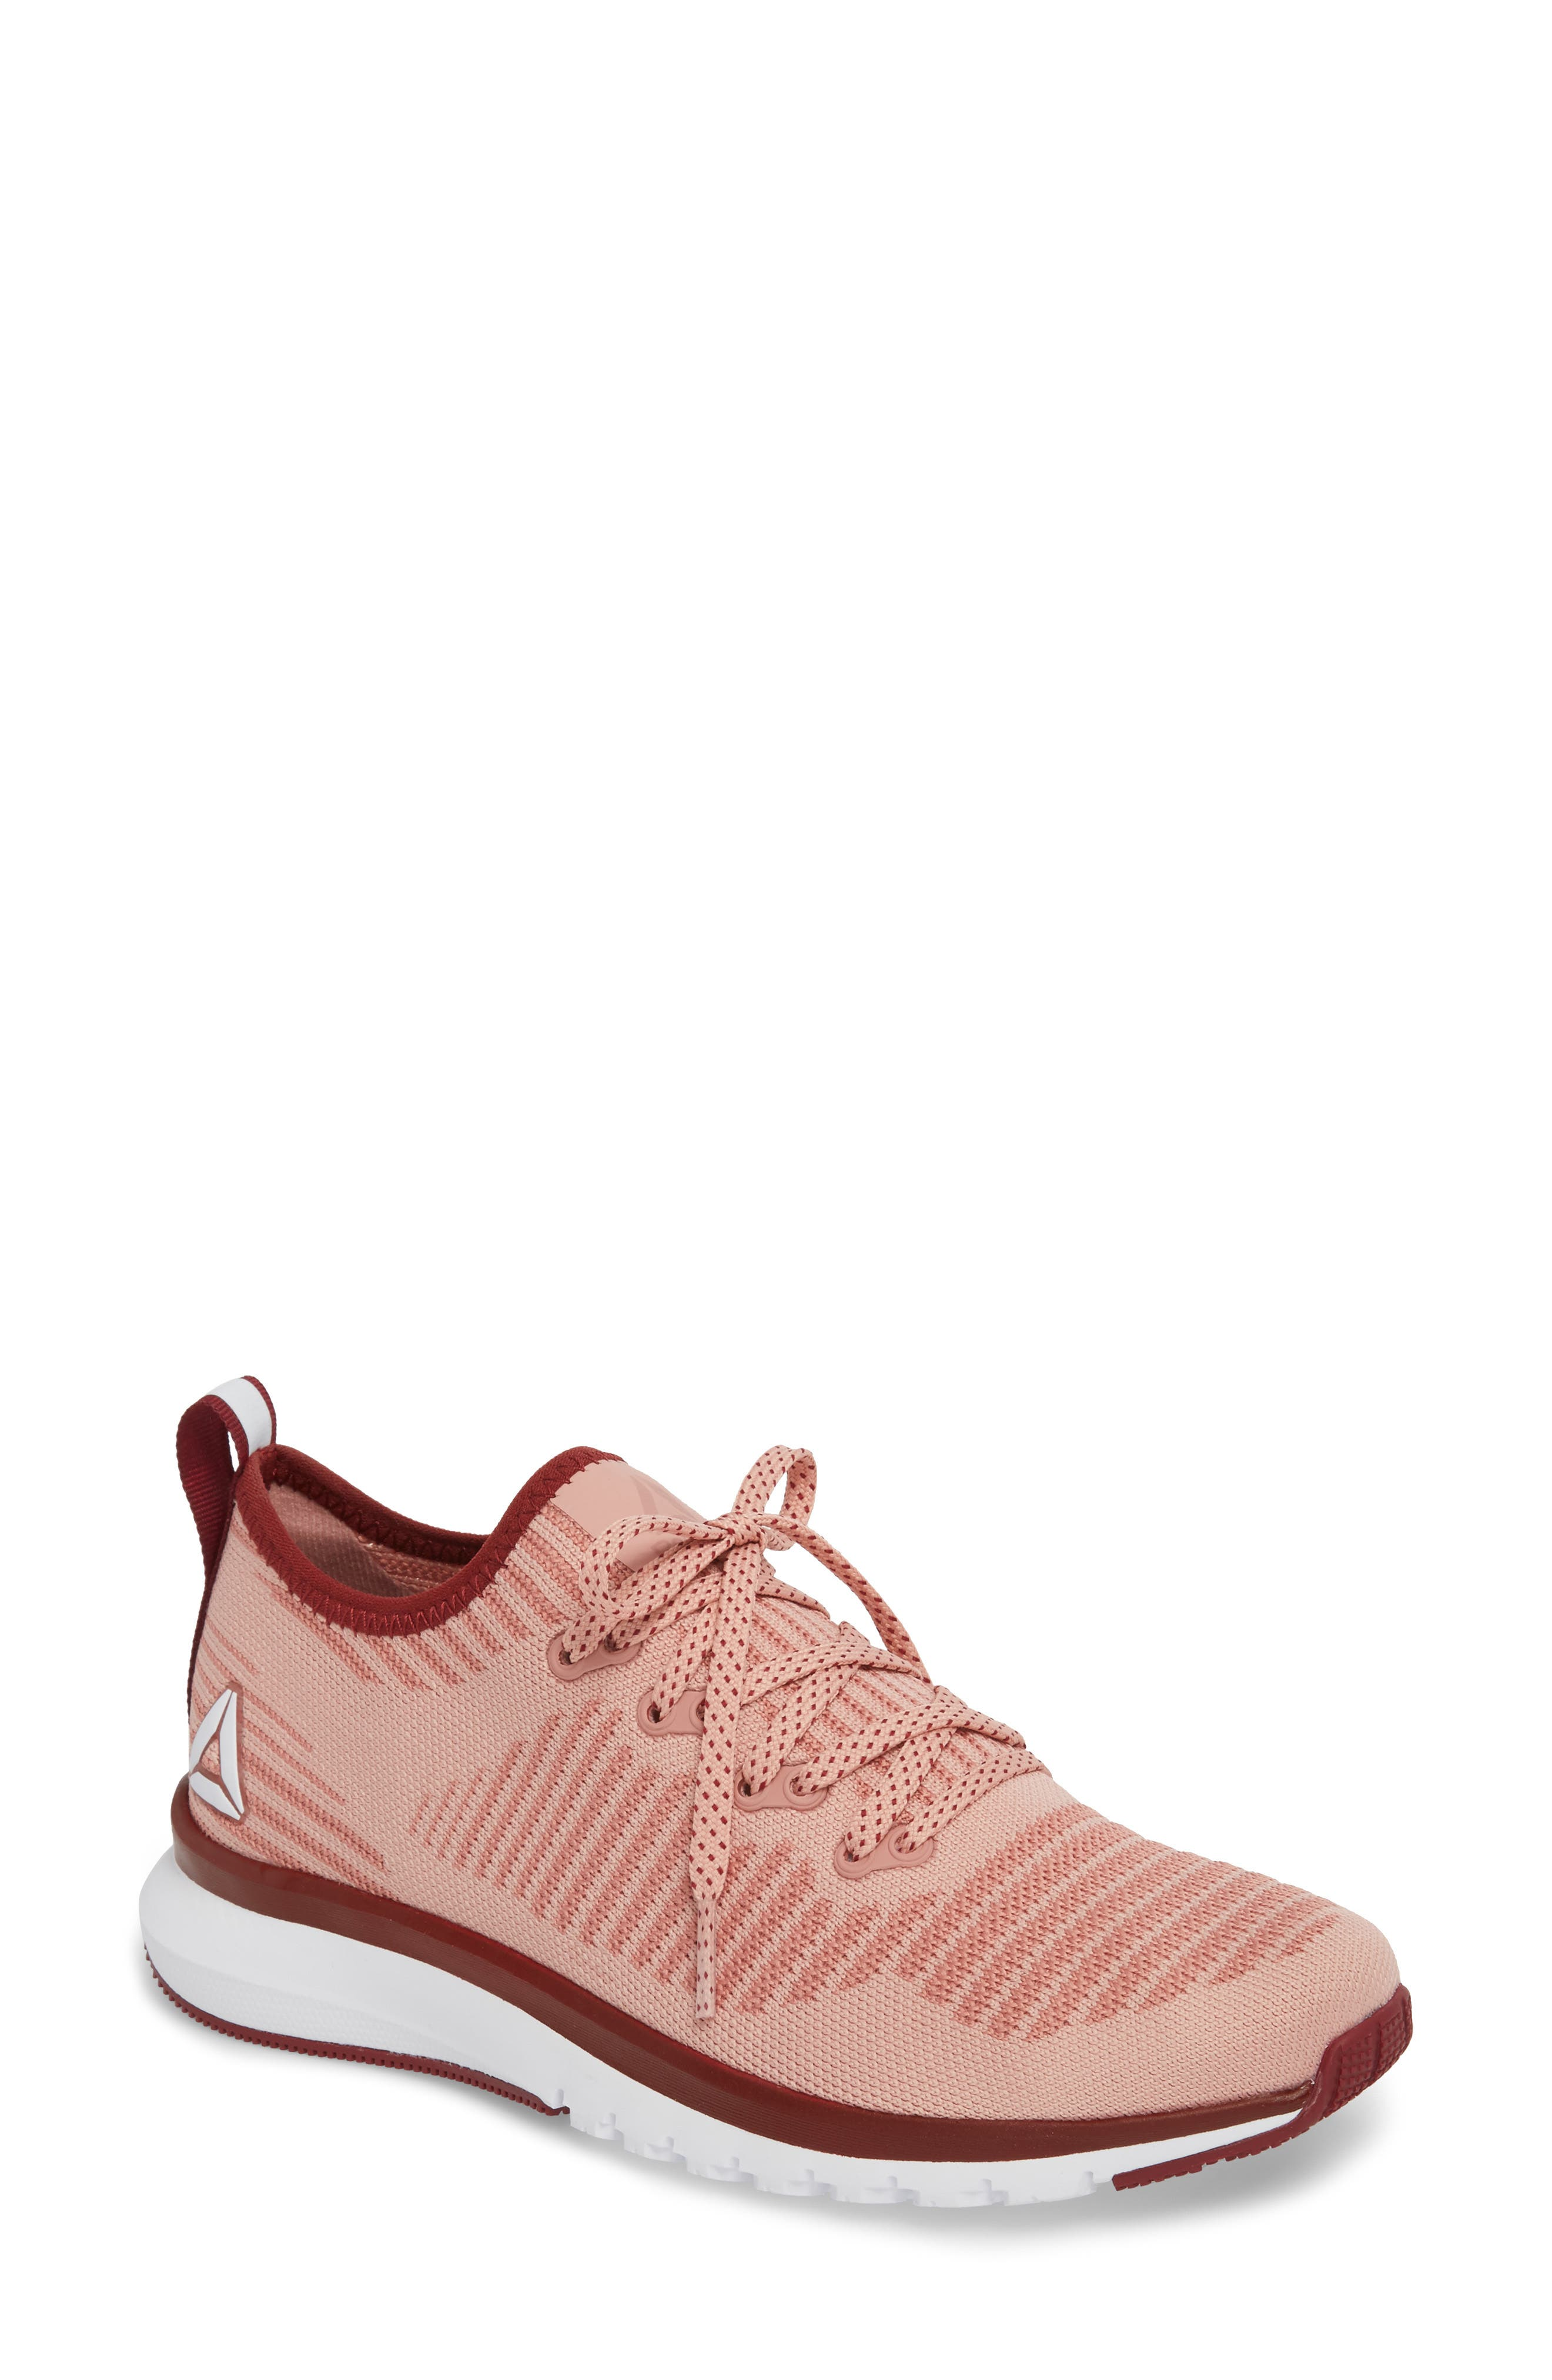 Print Run Smooth Ultra Knit Running Shoe,                             Main thumbnail 1, color,                             Chalk Pink/ Urban Maroon